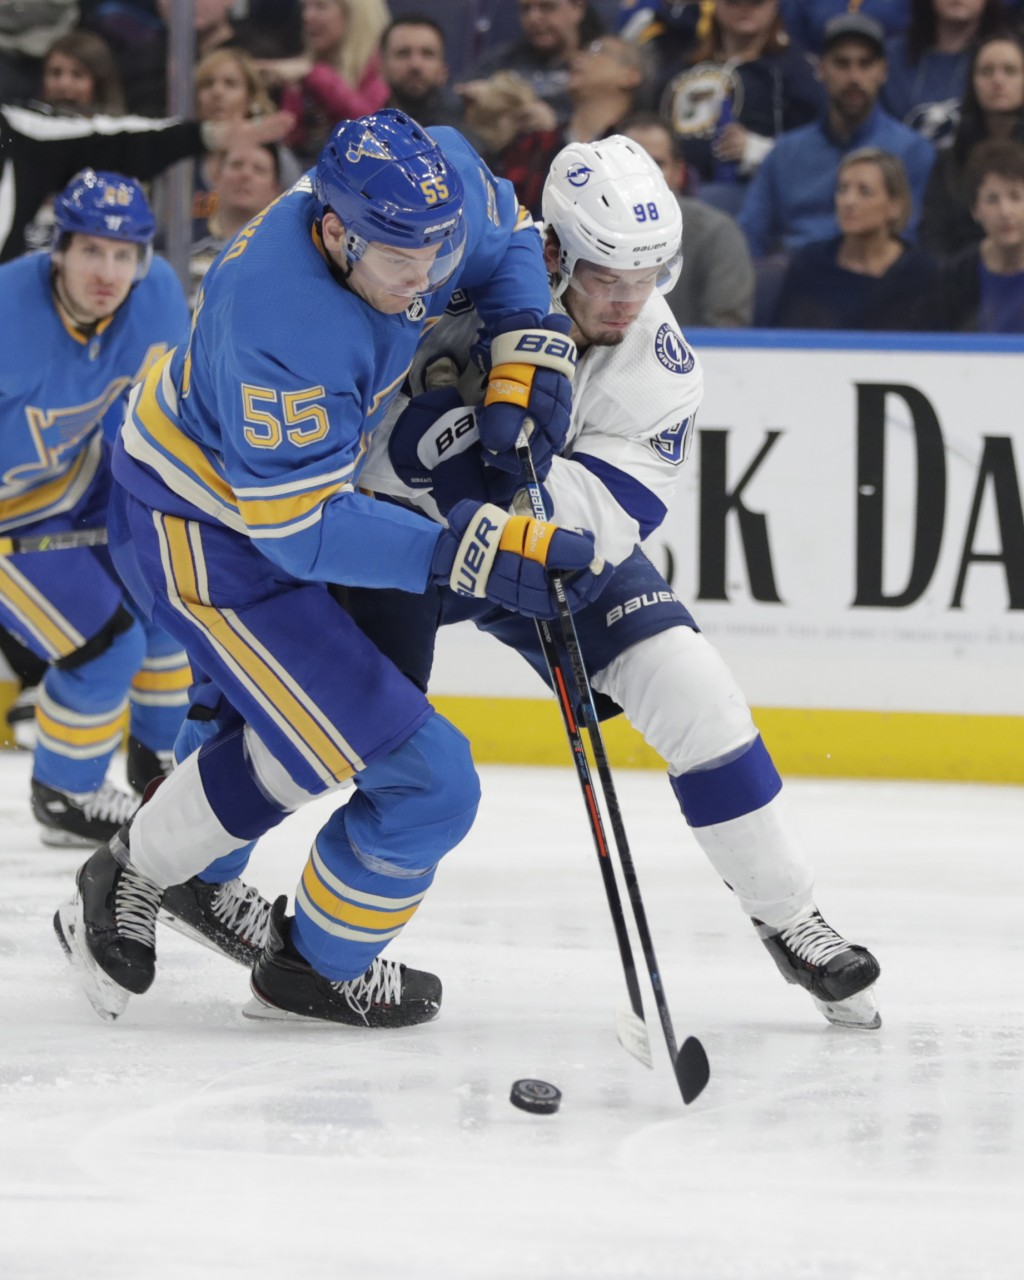 St. Louis Blues' Colton Parayko (55) battles Tampa Bay Lightning's Mikhail Sergachev (98) for the puck in the second period of an NHL hockey game, Sat